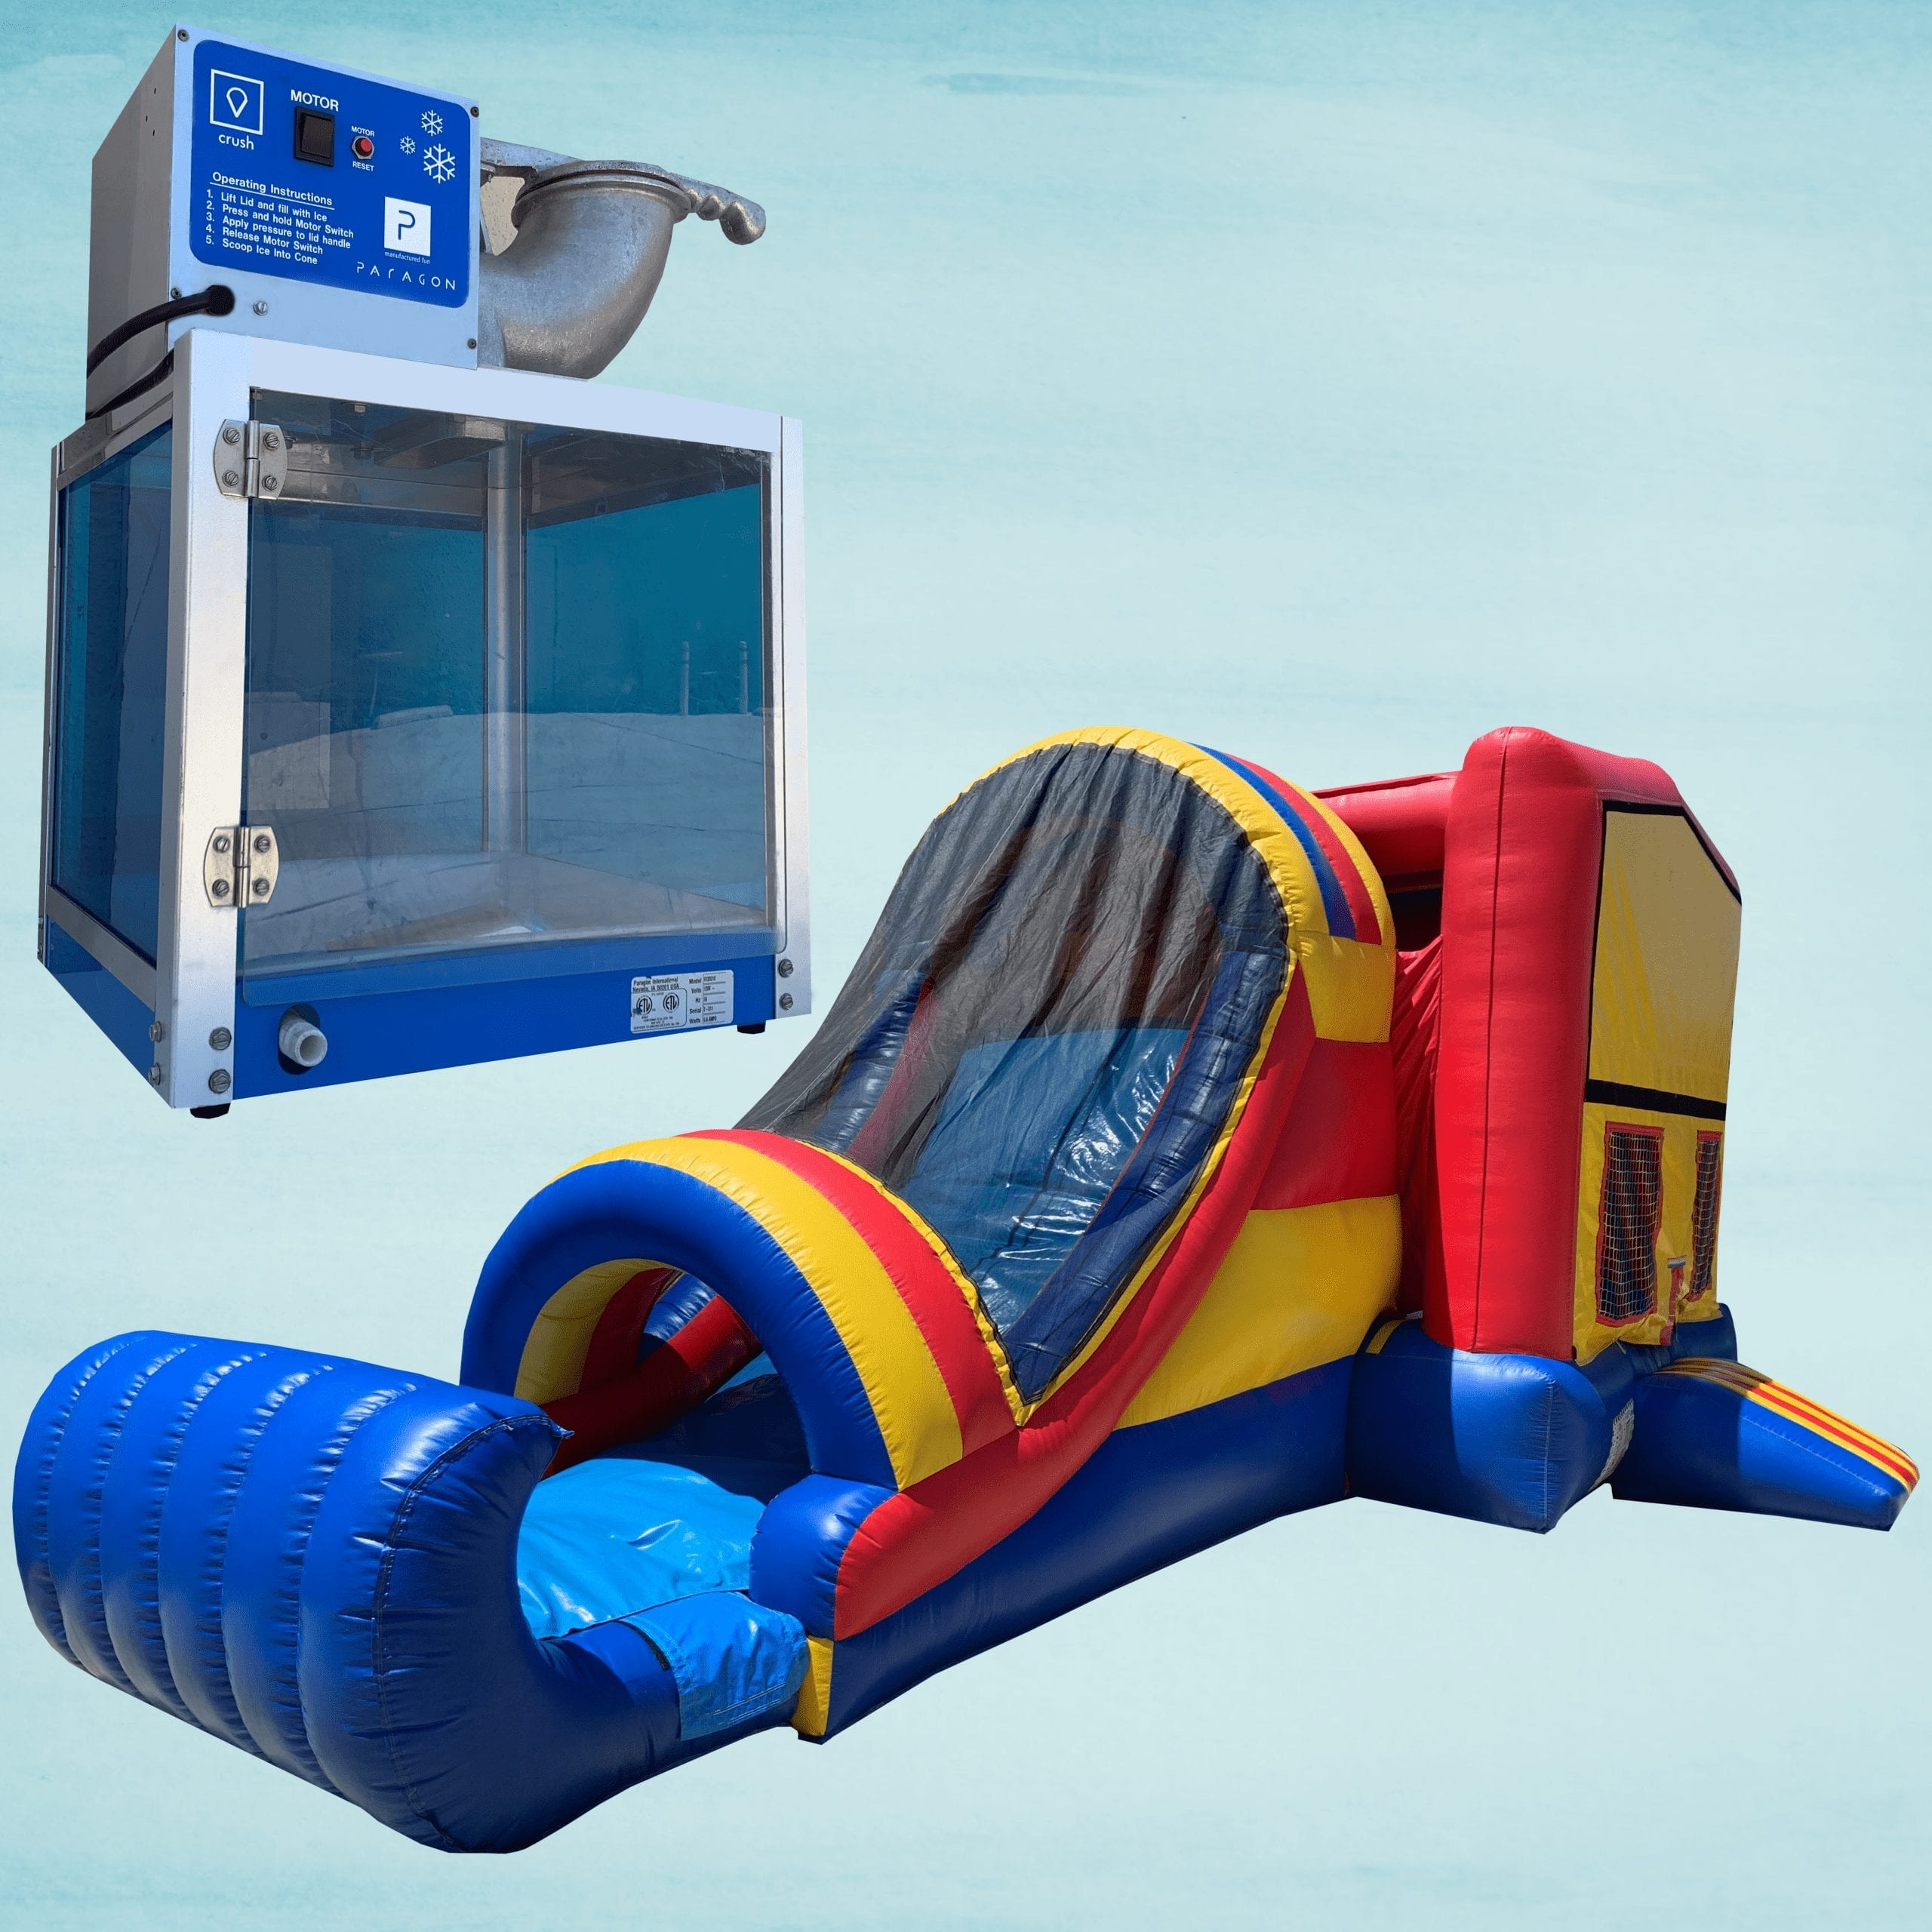 Snow Cone Machine & Bounce N' Slide